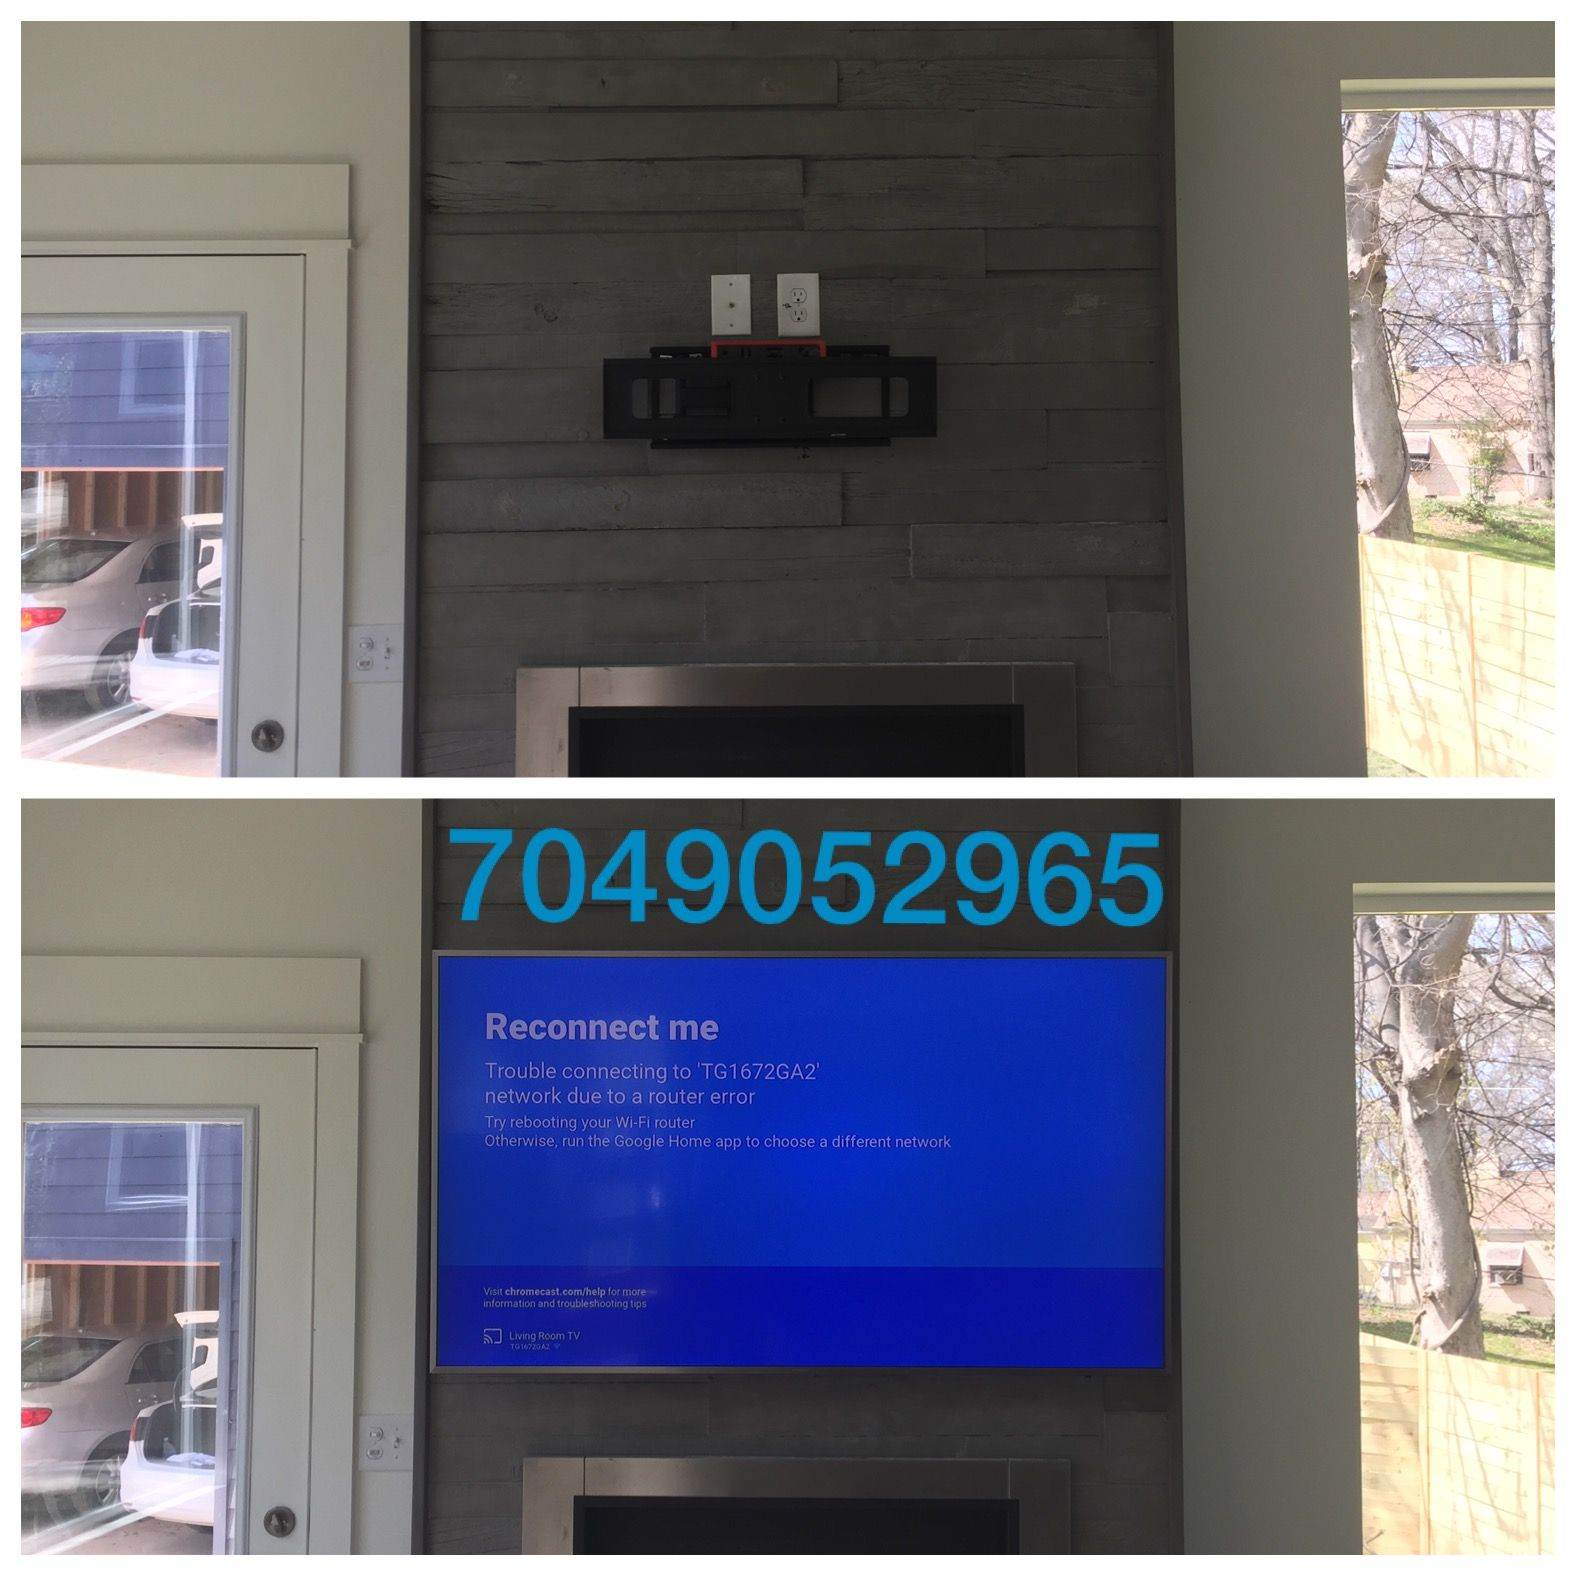 Find This Pin And More On Charlotte TV Wall Mounting Service Fireplace TV  Mount Installation Https://www.tvmountcharlotte.com/ By Freetvmounts.